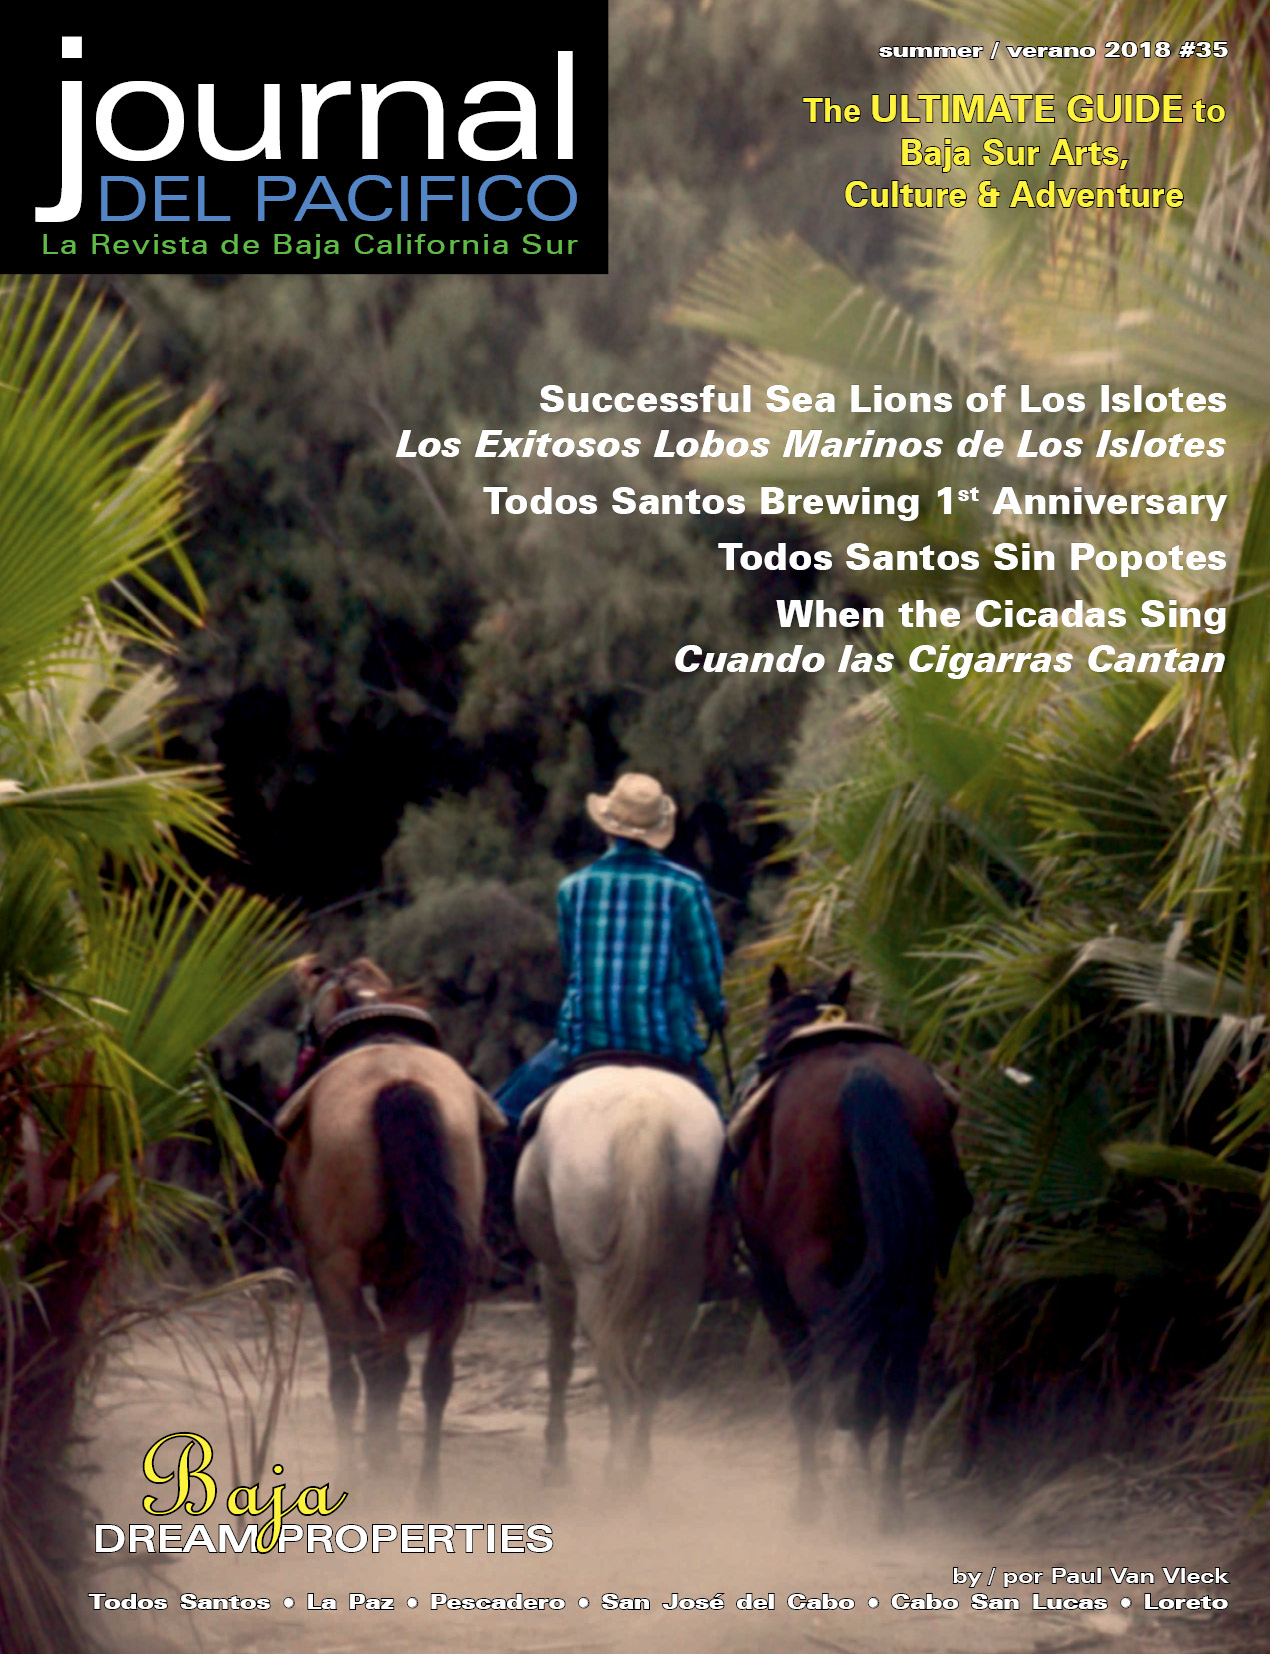 Summer/Verano 2018 Issue of Journal del Pacifico